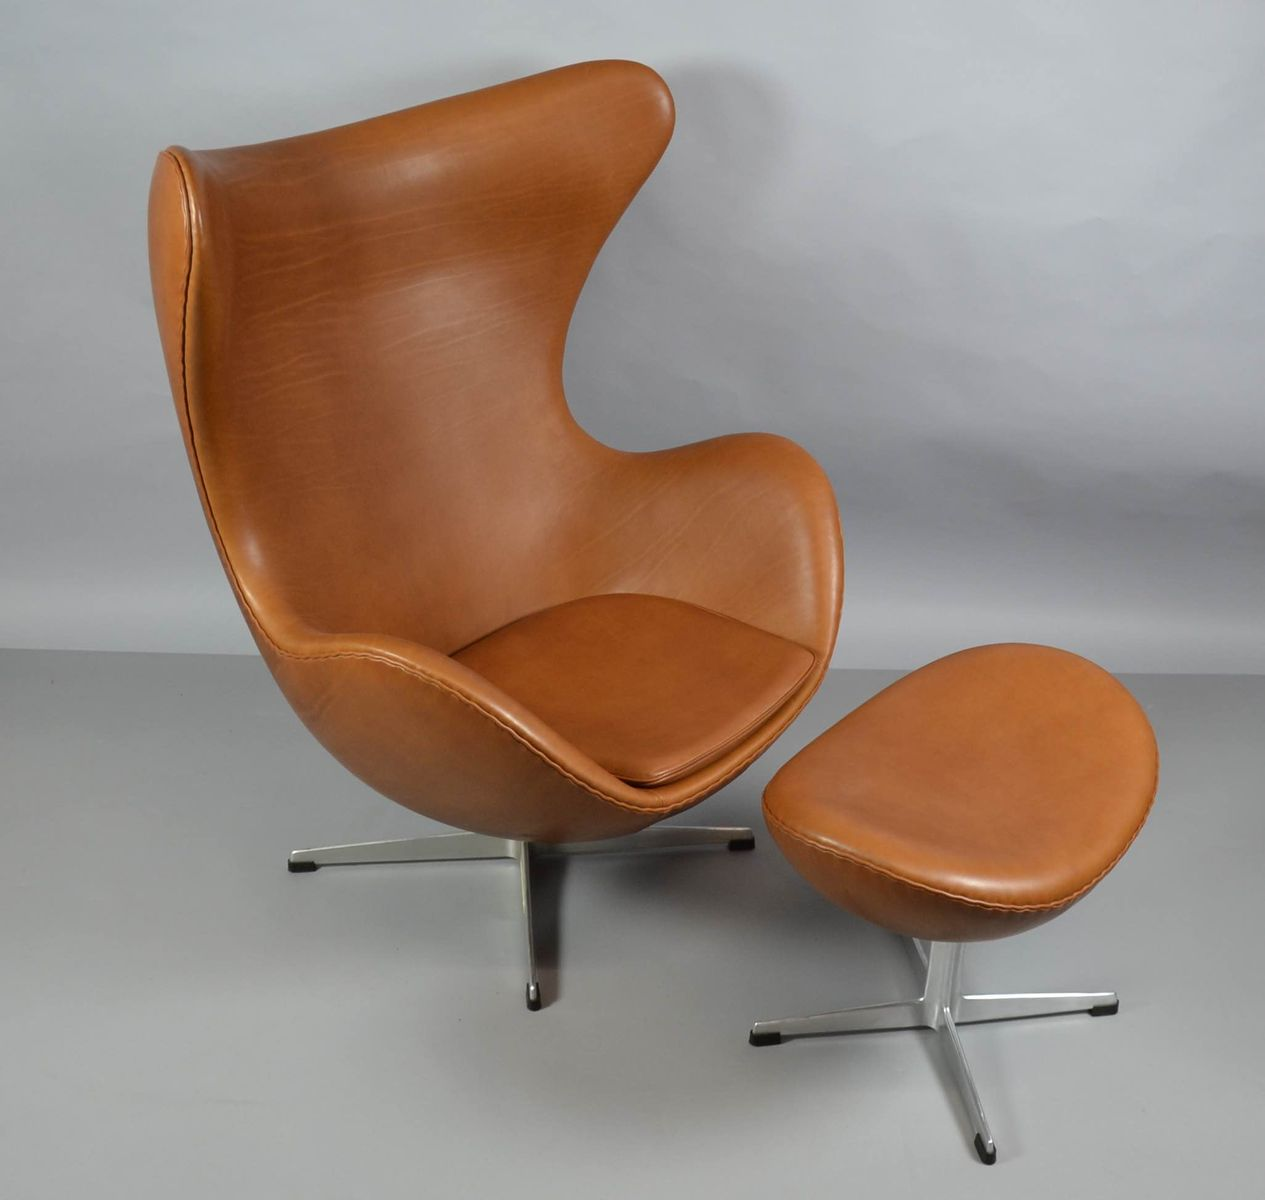 egg chair aus leder mit ottomane von arne jacobsen f r. Black Bedroom Furniture Sets. Home Design Ideas